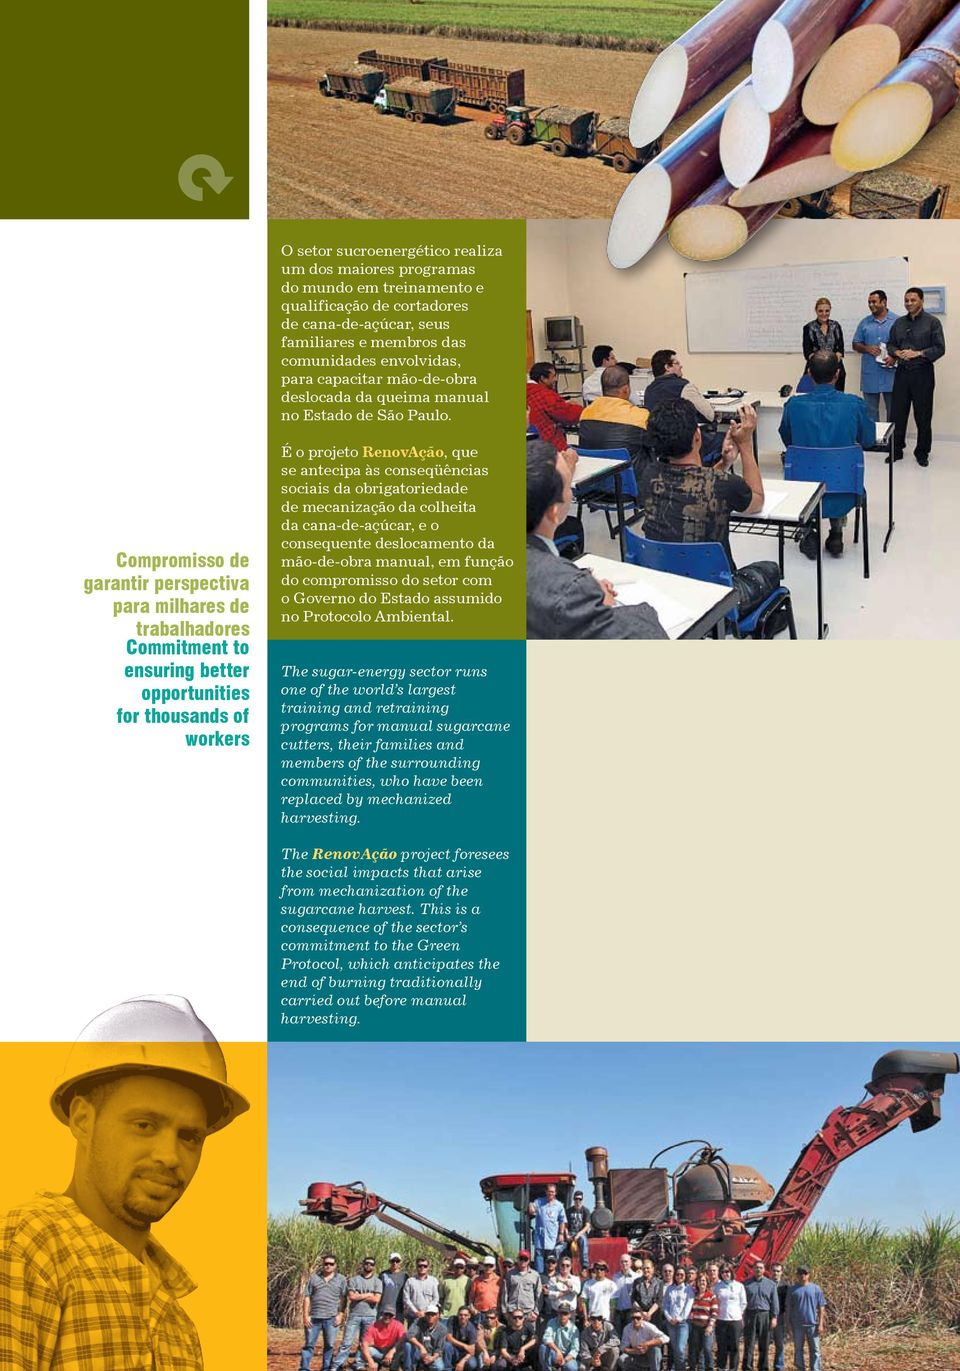 Compromisso de garantir perspectiva para milhares de trabalhadores Commitment to ensuring better opportunities for thousands of workers É o projeto RenovAção, que se antecipa às conseqüências sociais